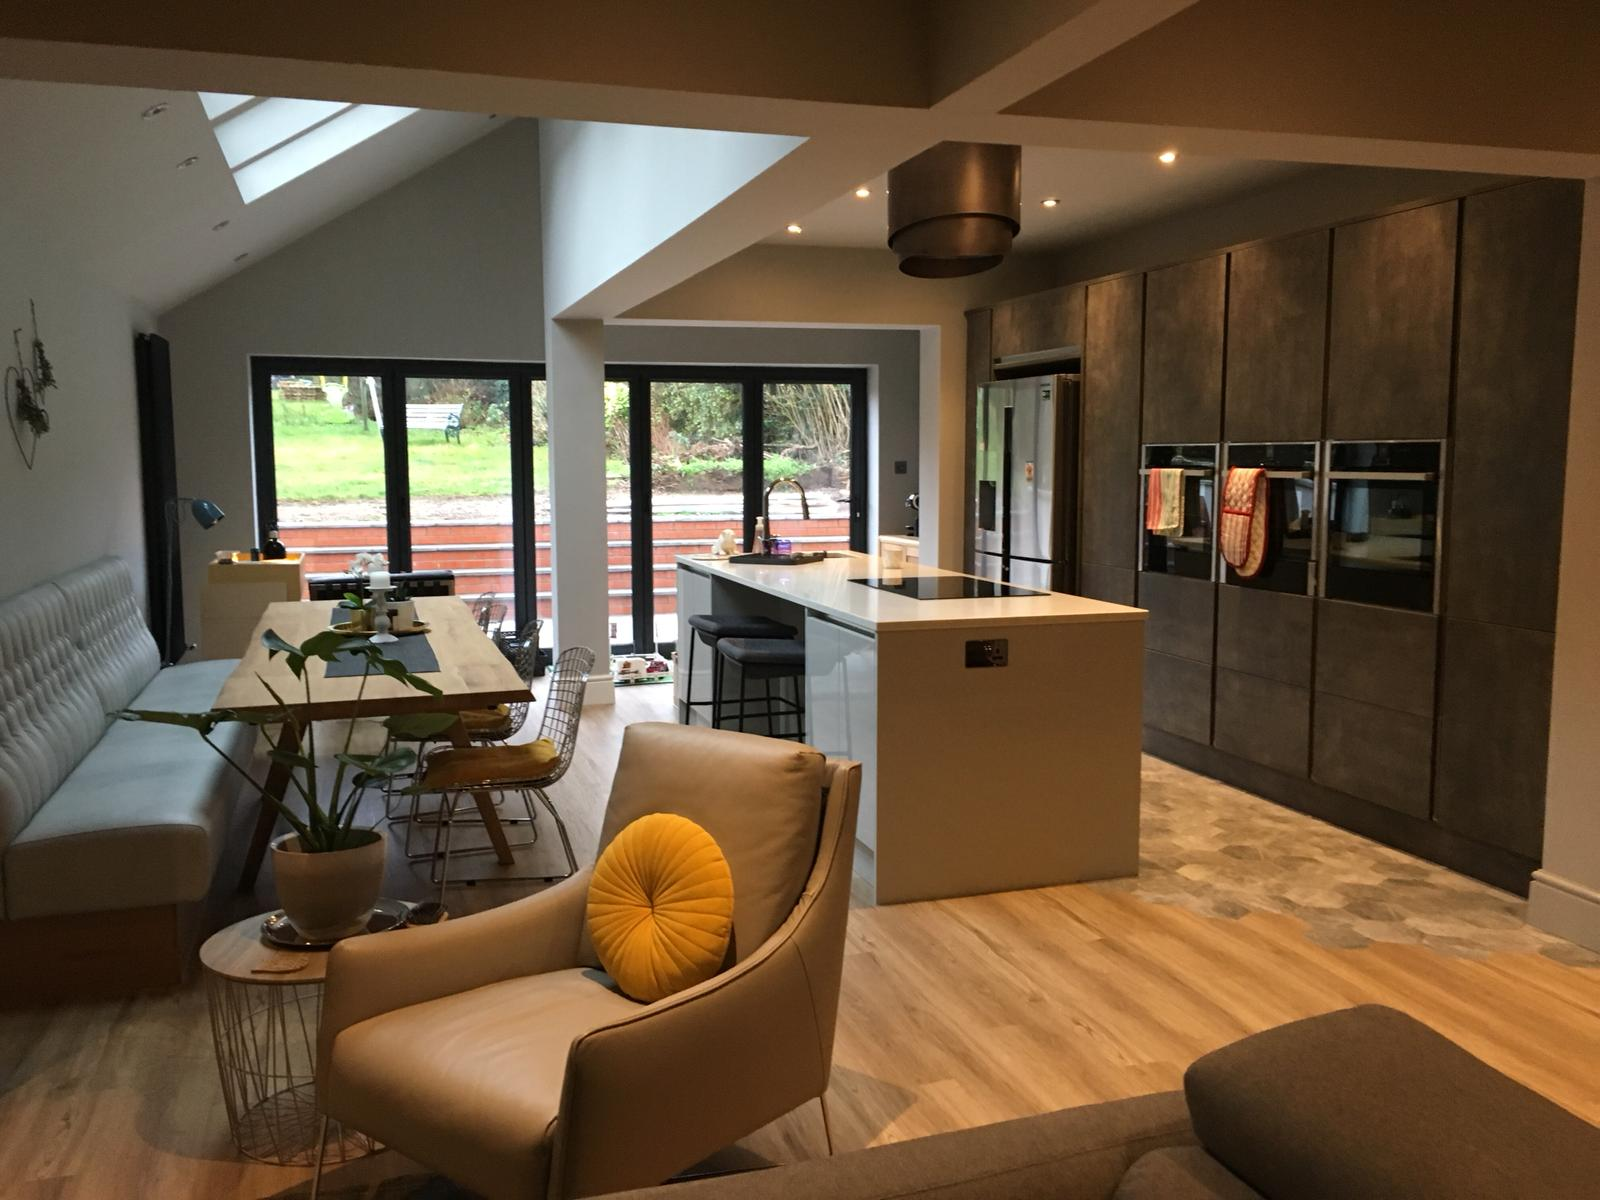 Single storey extension with built in kitchen appliances